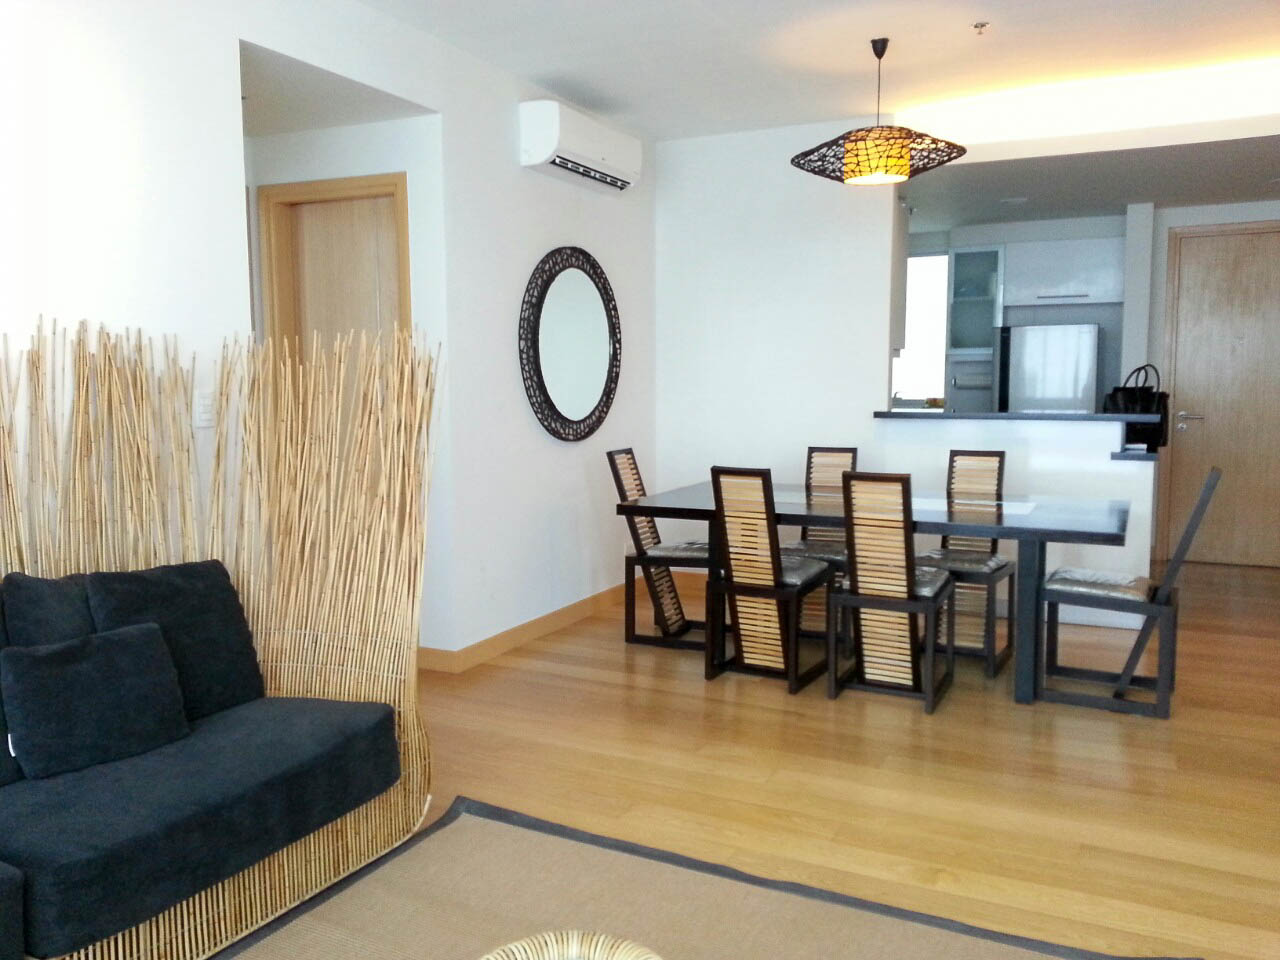 2 bedroom condo for rent in cebu business park 1016 residences for I bedroom condo for rent